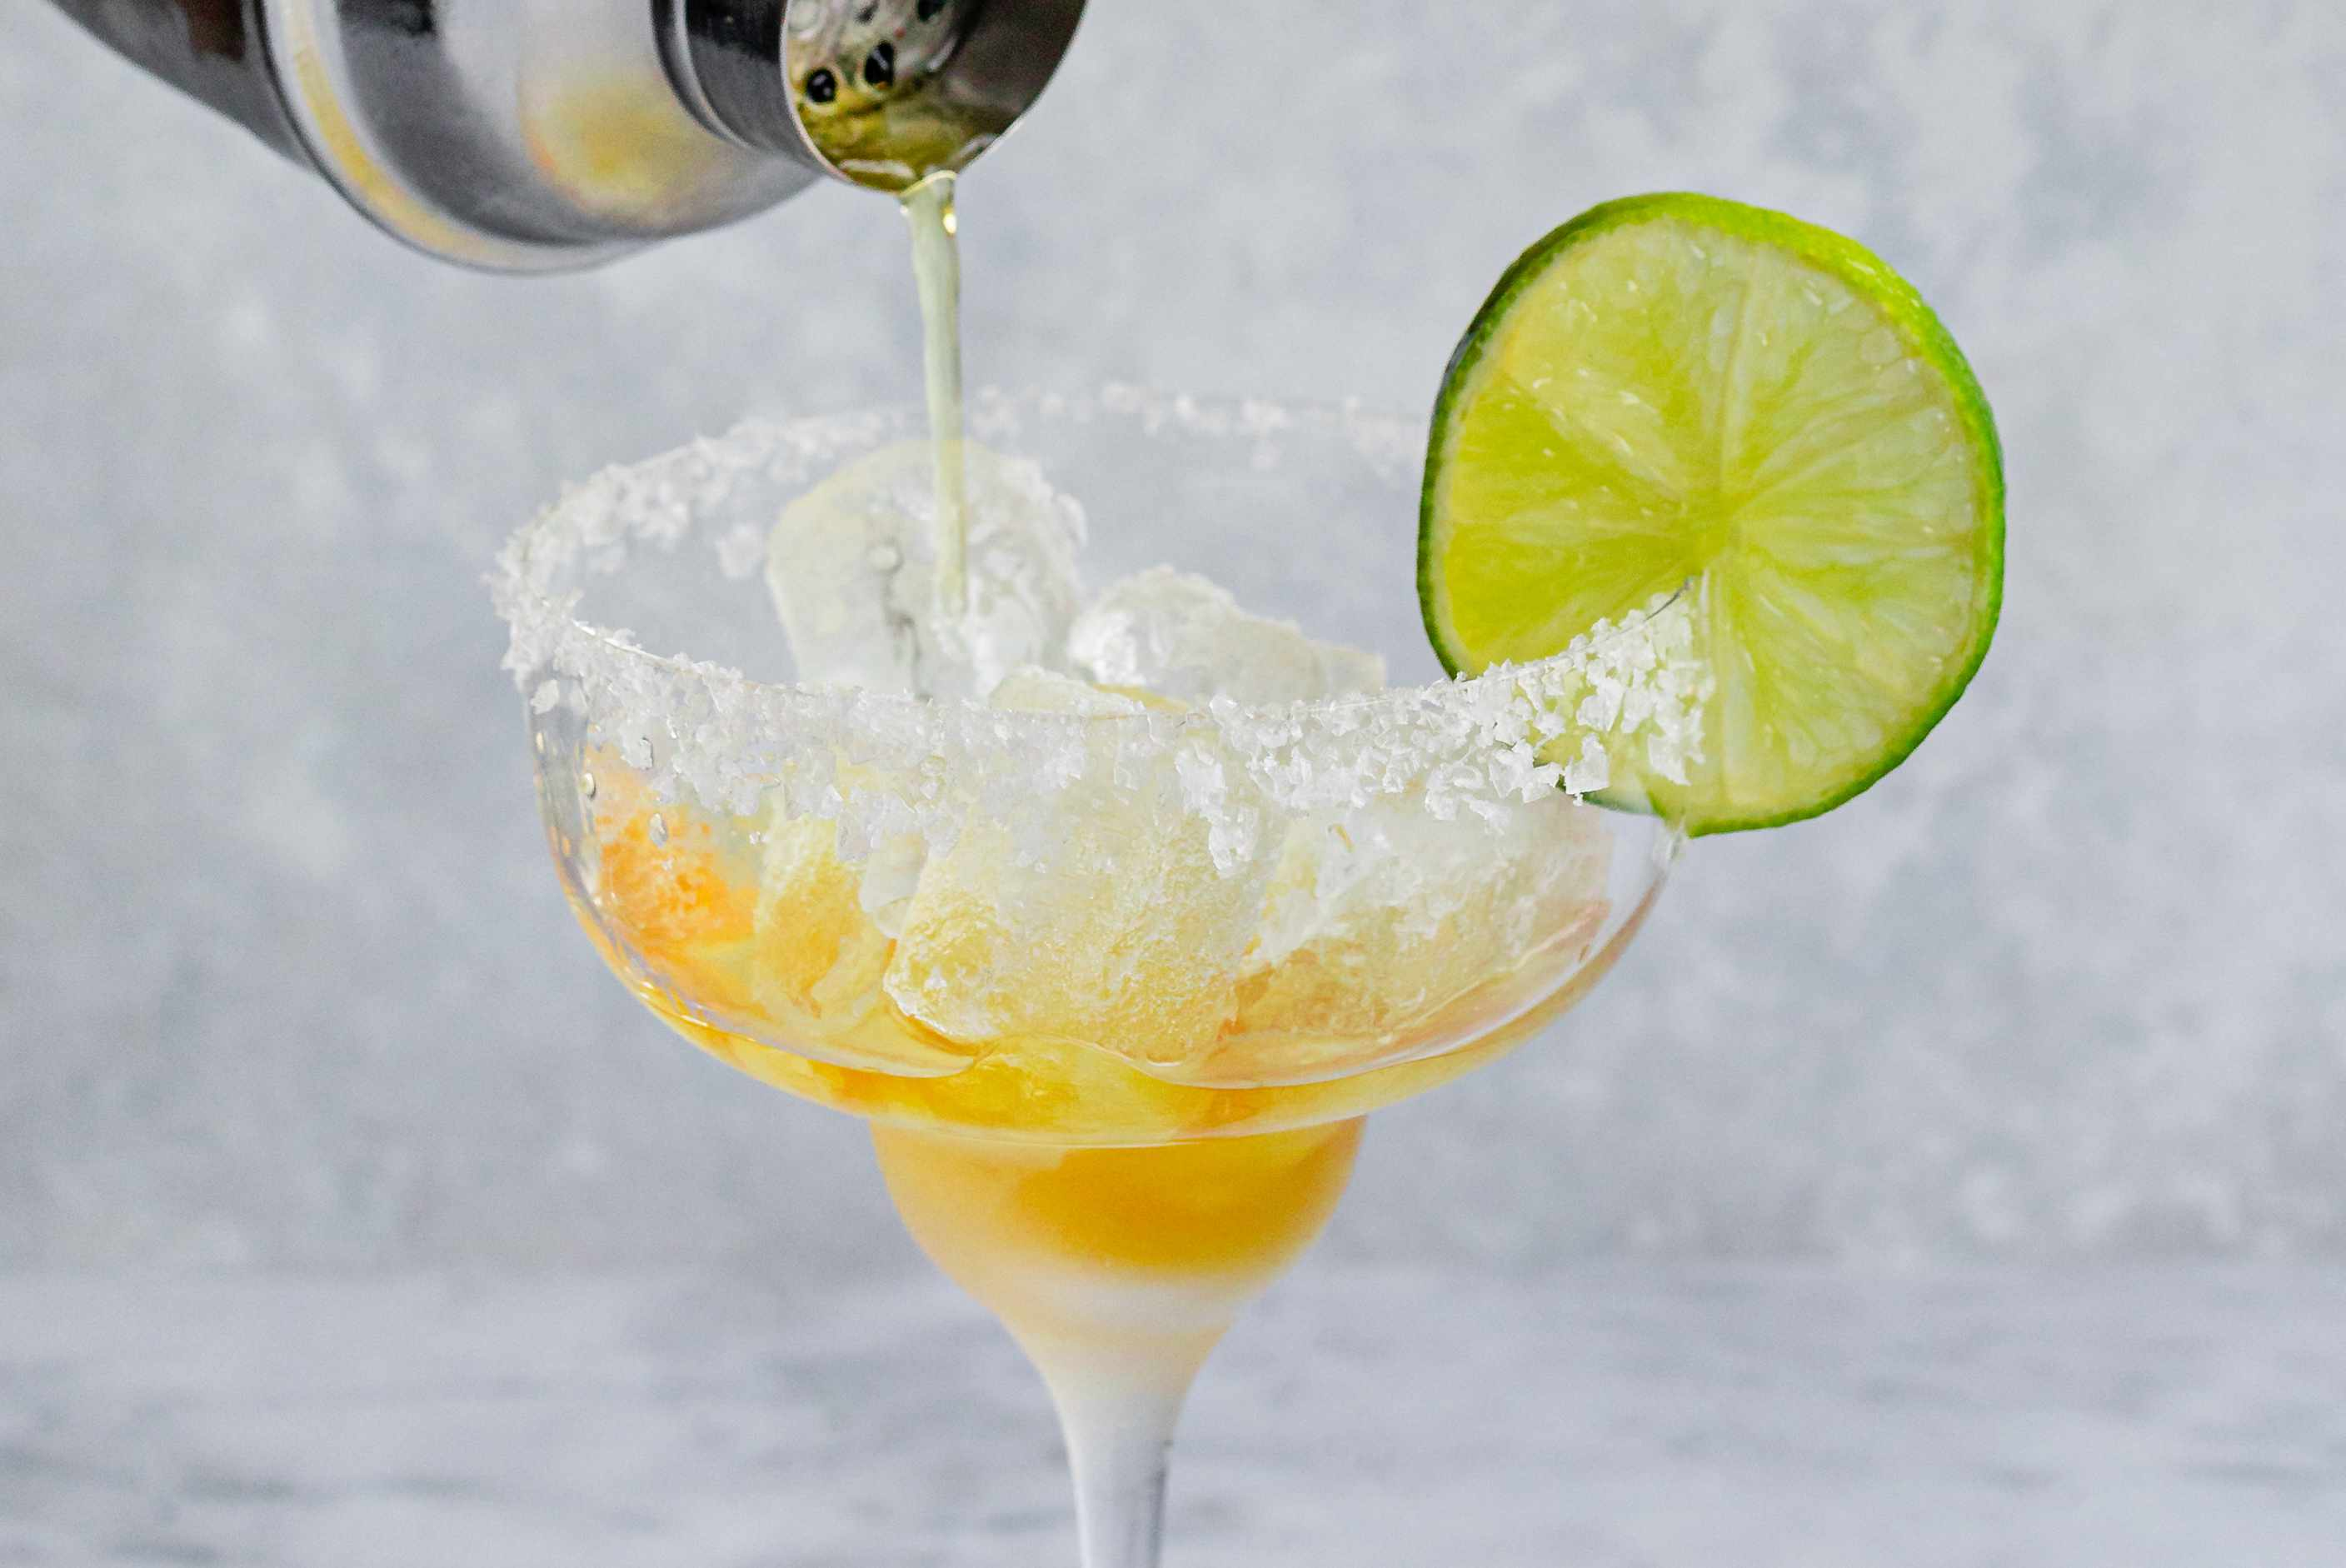 Cadillac margarita strained into a prepared glass rimmed with salt and a slice of lime